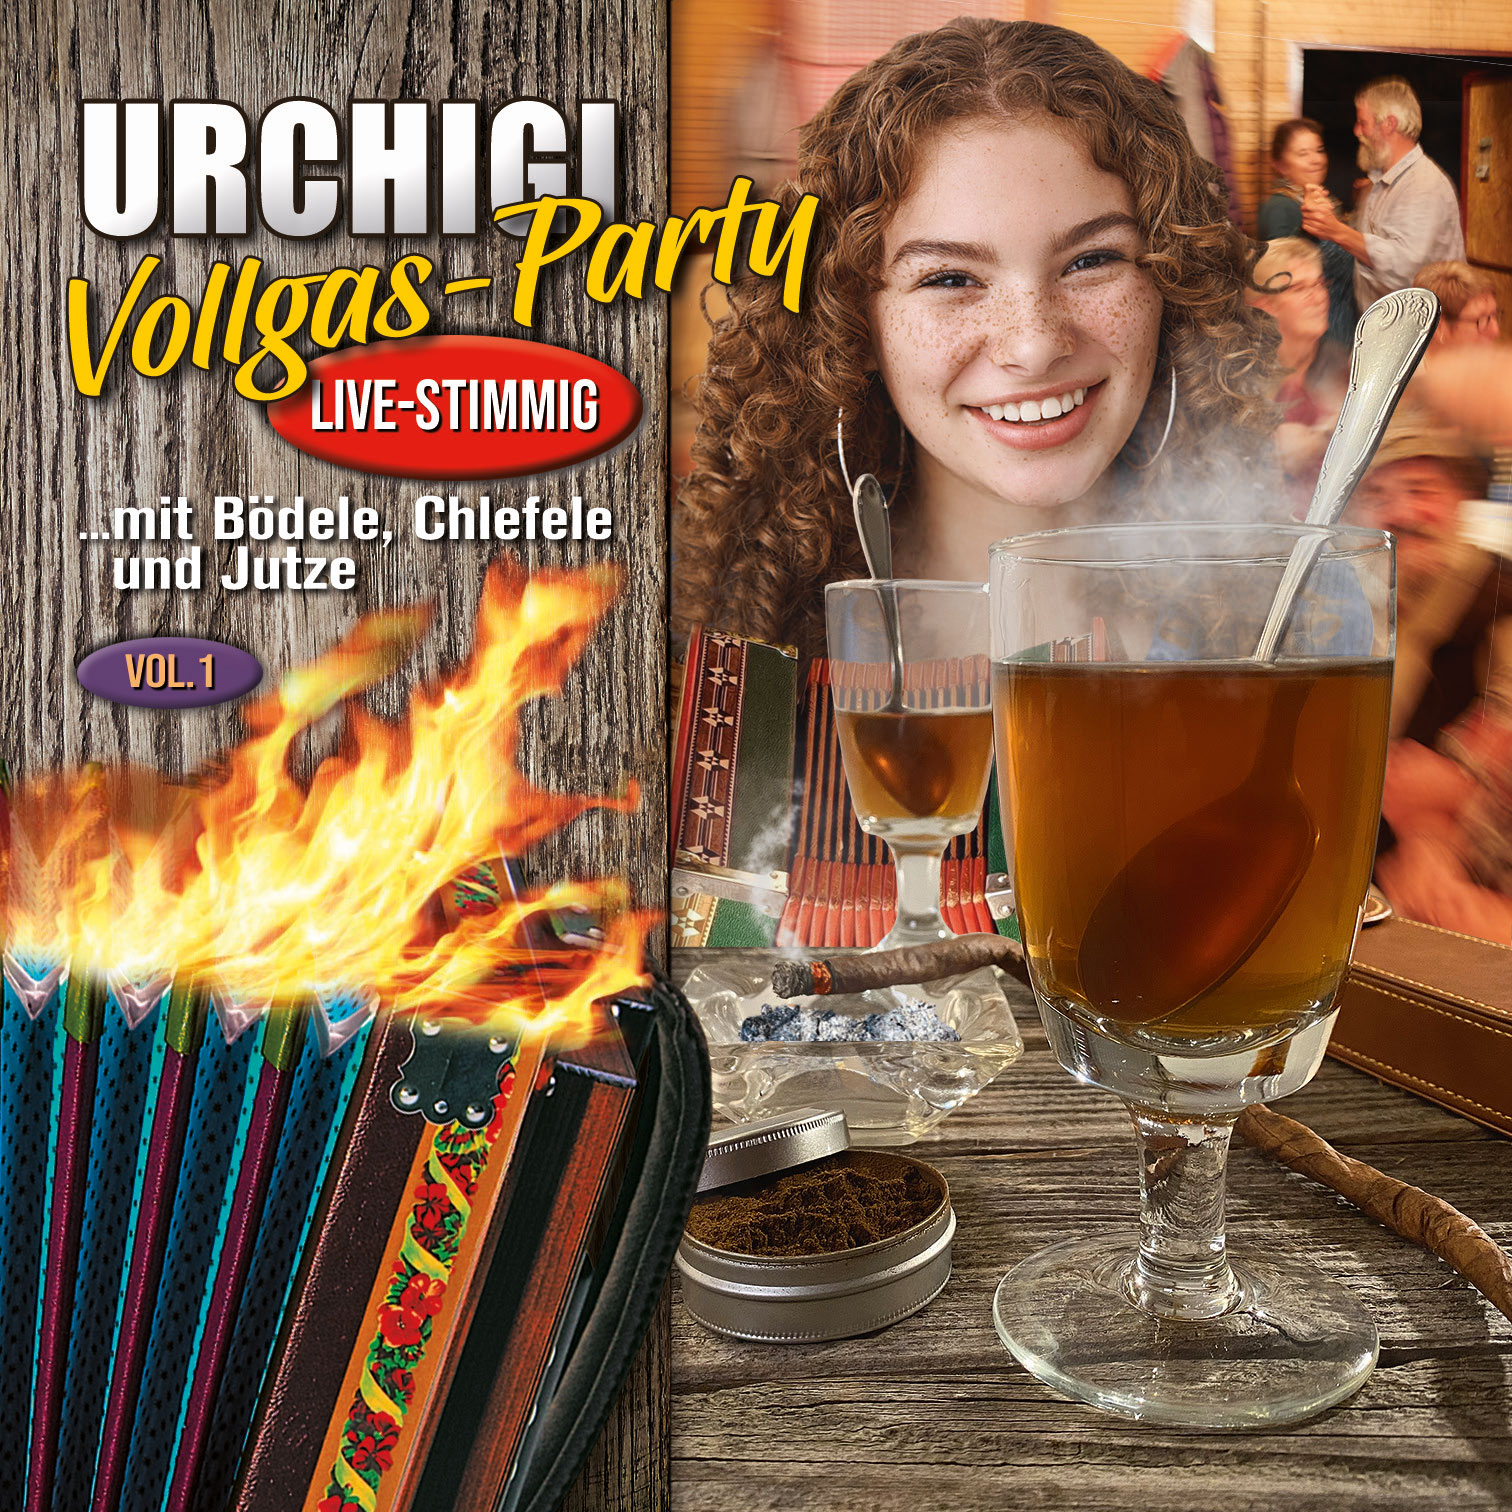 Urchigi Vollgas-Party